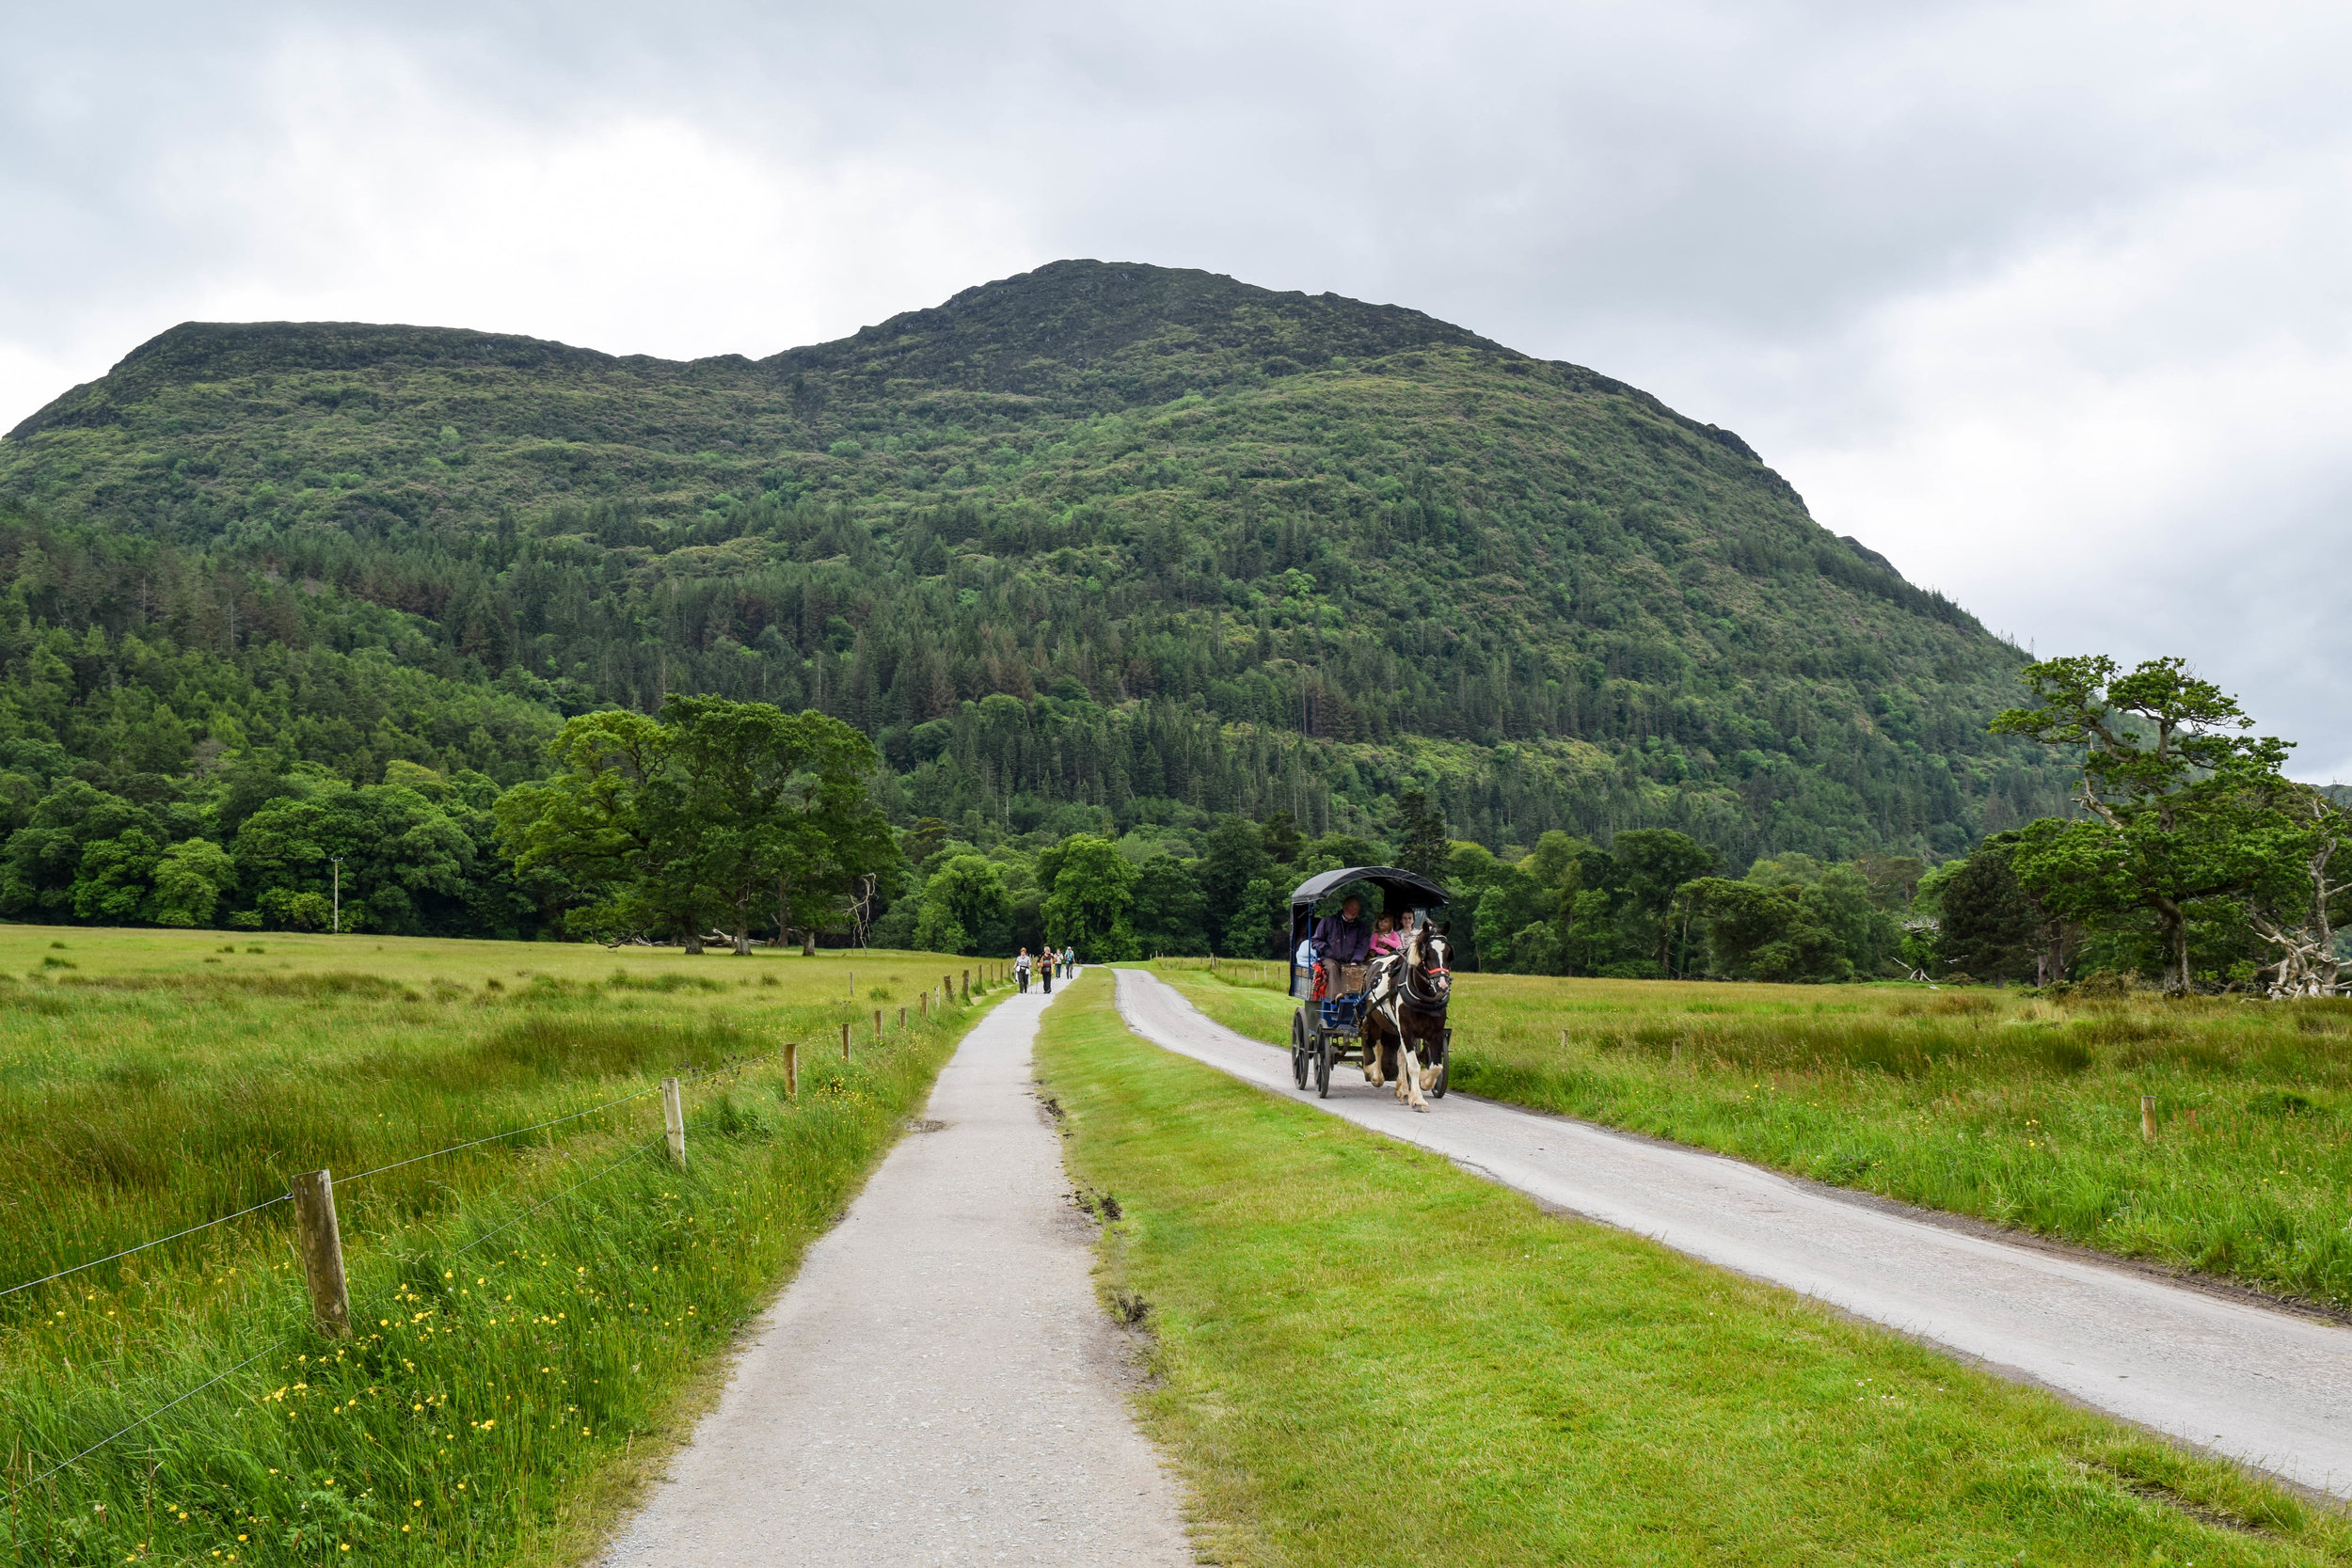 The Macgillycuddy Reeks (the mountains of Killarney National Park) do not reek. The horse manure, however, did.